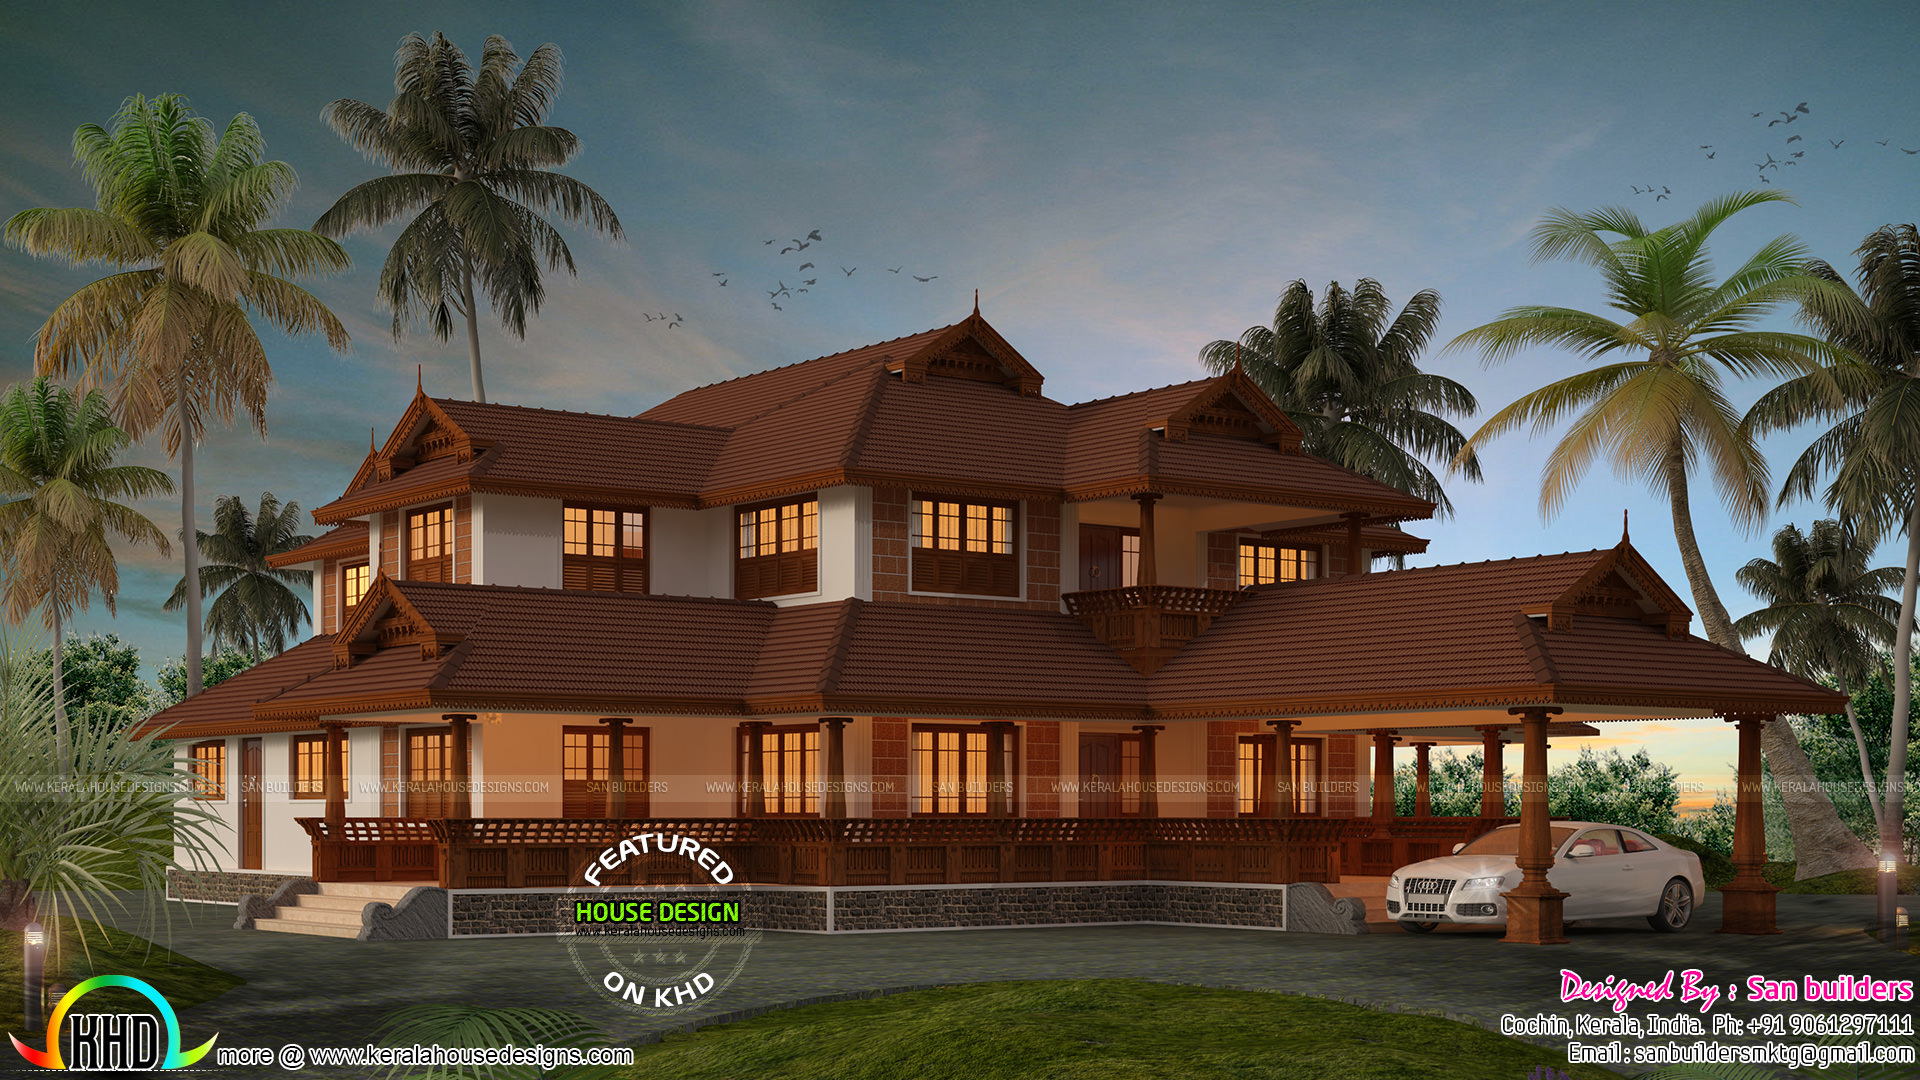 Traditional Kerala home for year 2017   Kerala home design   Bloglovin  Square feet details of this house  Total area   3200 sq ft  No of bedrooms    5  Style   Kerala traditional